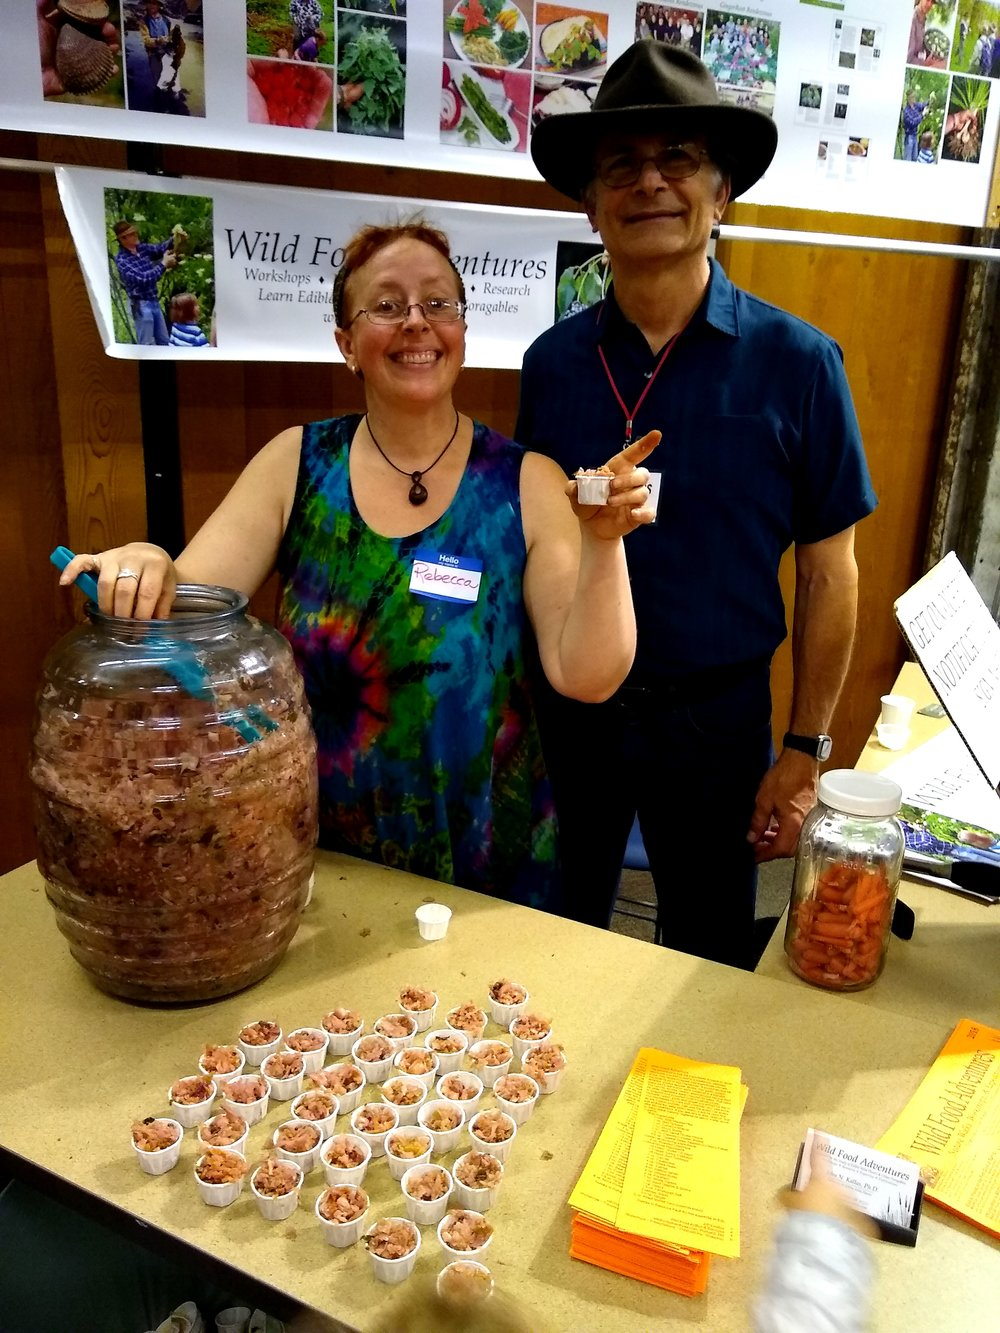 So fun having Wild Food Adventures at this year's festival. John Kallas and Rebecca Humility sampled their locally foraged wild edibles kraut which included everything from wild blackberries and wood sorrel, to wild carrot flower heads, dandelion flower petals, common mallow and much, much more. So cool!